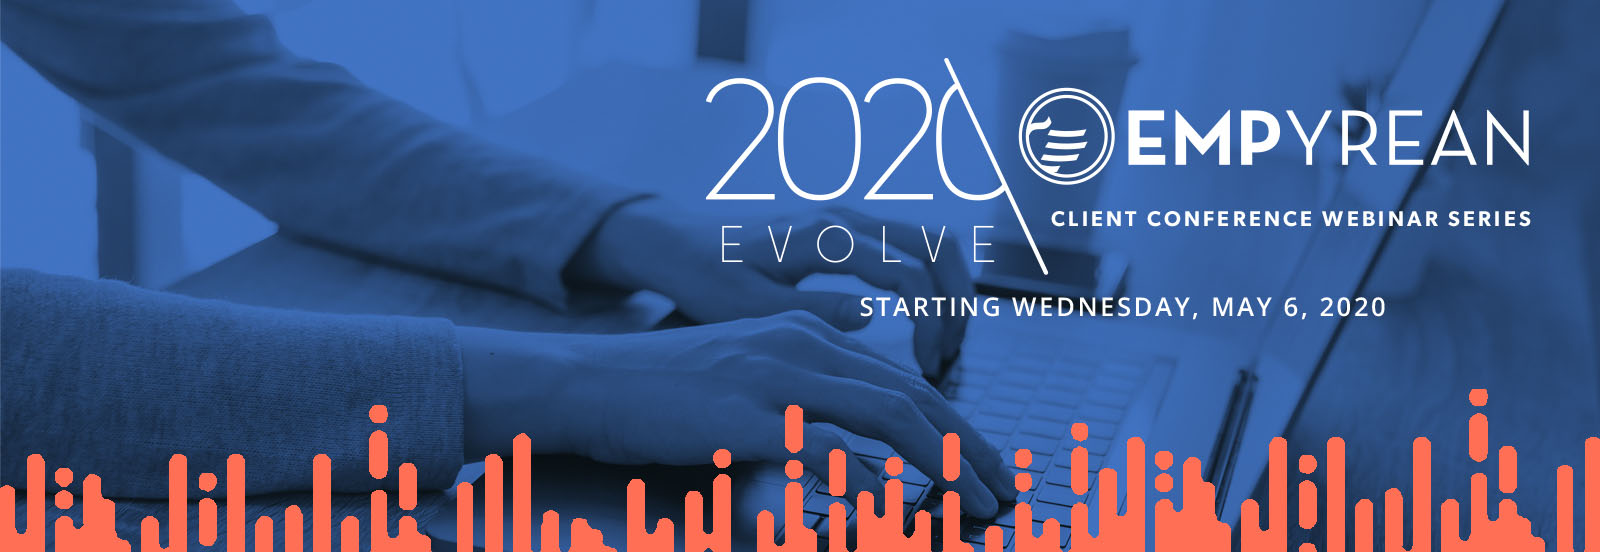 Join us for the 2020 Evolve Empyrean Client Conference Webinar Series, starting May 6th